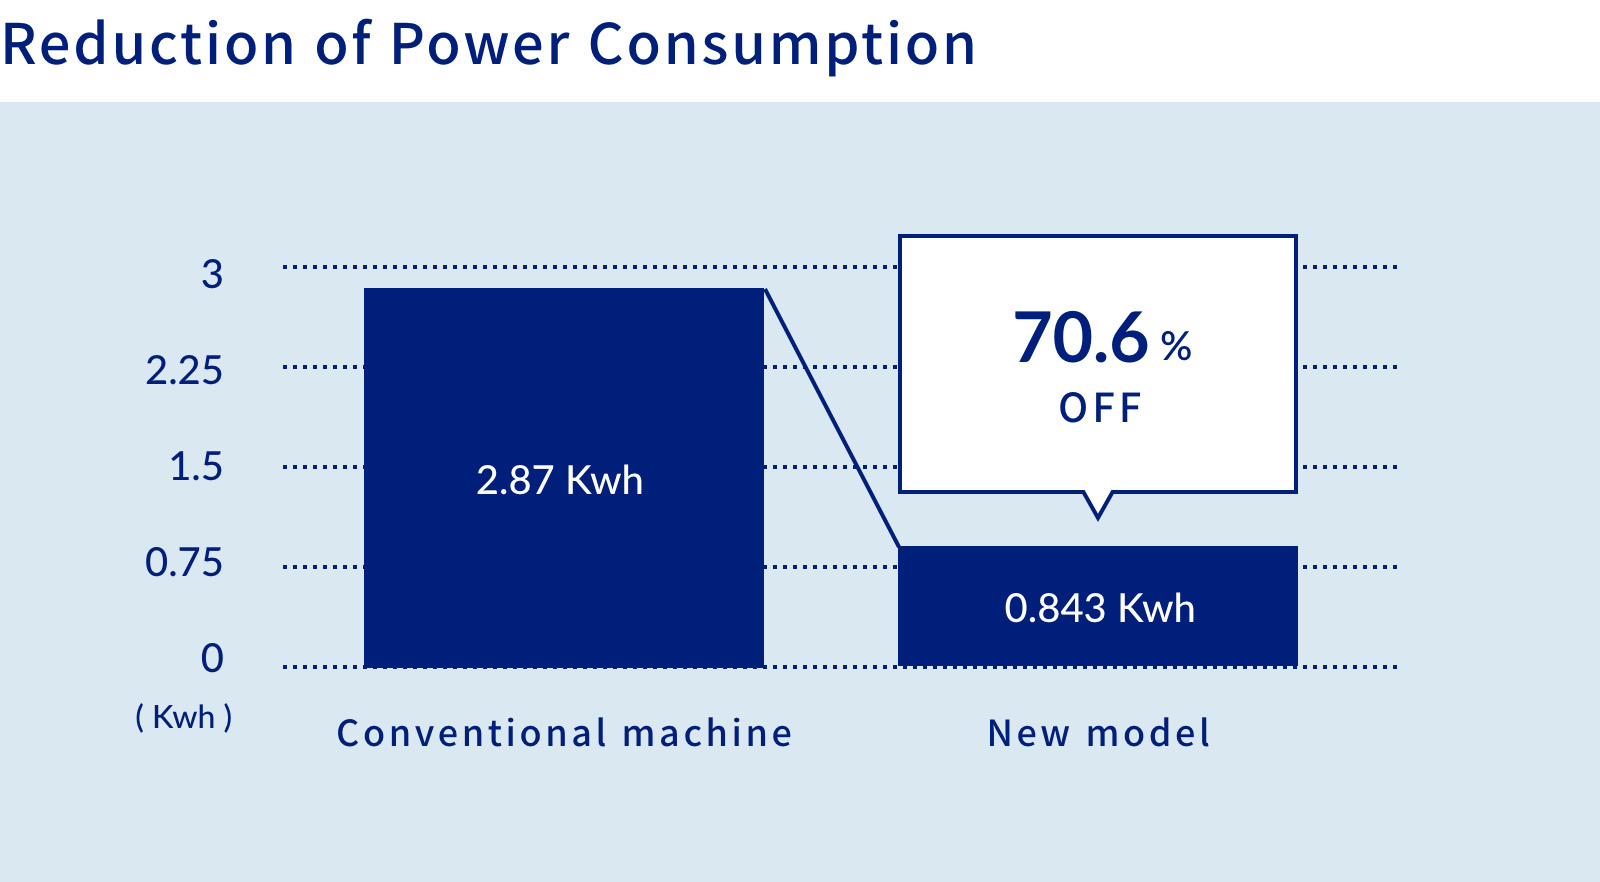 Reduction of Power Consumption   70.6% OFF